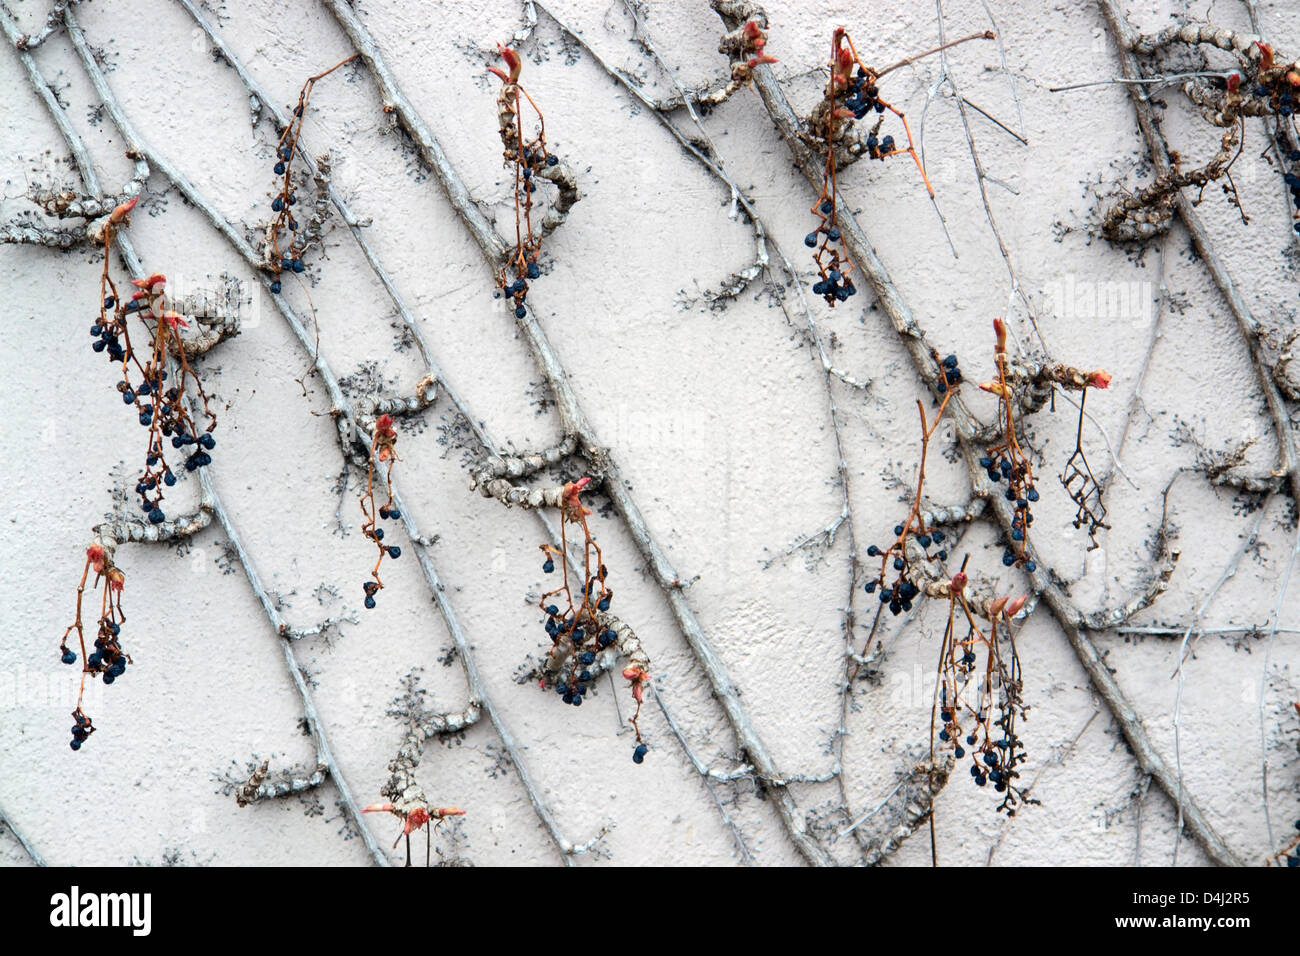 detail of Virginia creeper on plastered wall - Stock Image